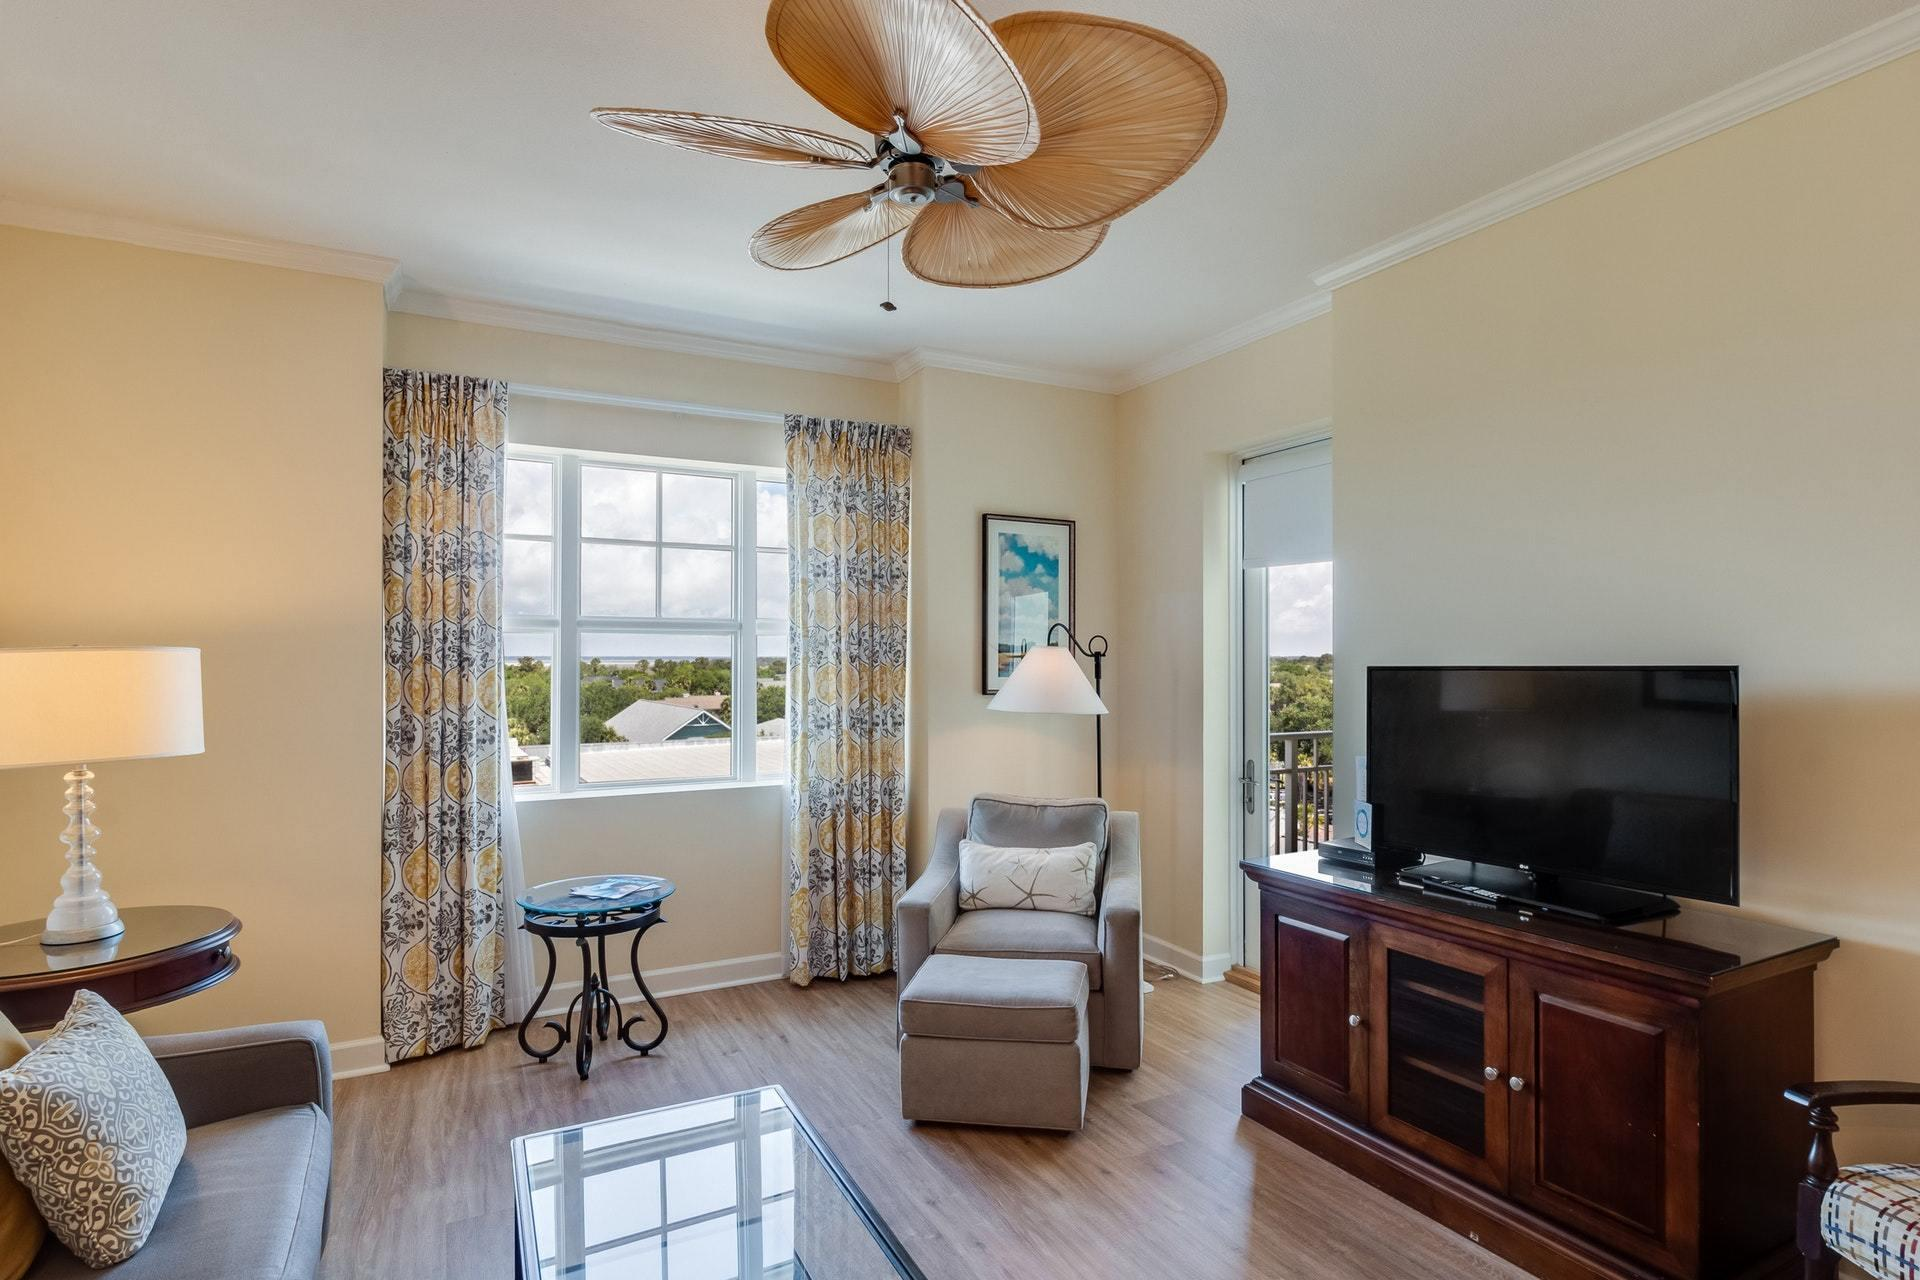 Wild Dunes Homes For Sale - 505/507 Village At Wild Dunes, Isle of Palms, SC - 25